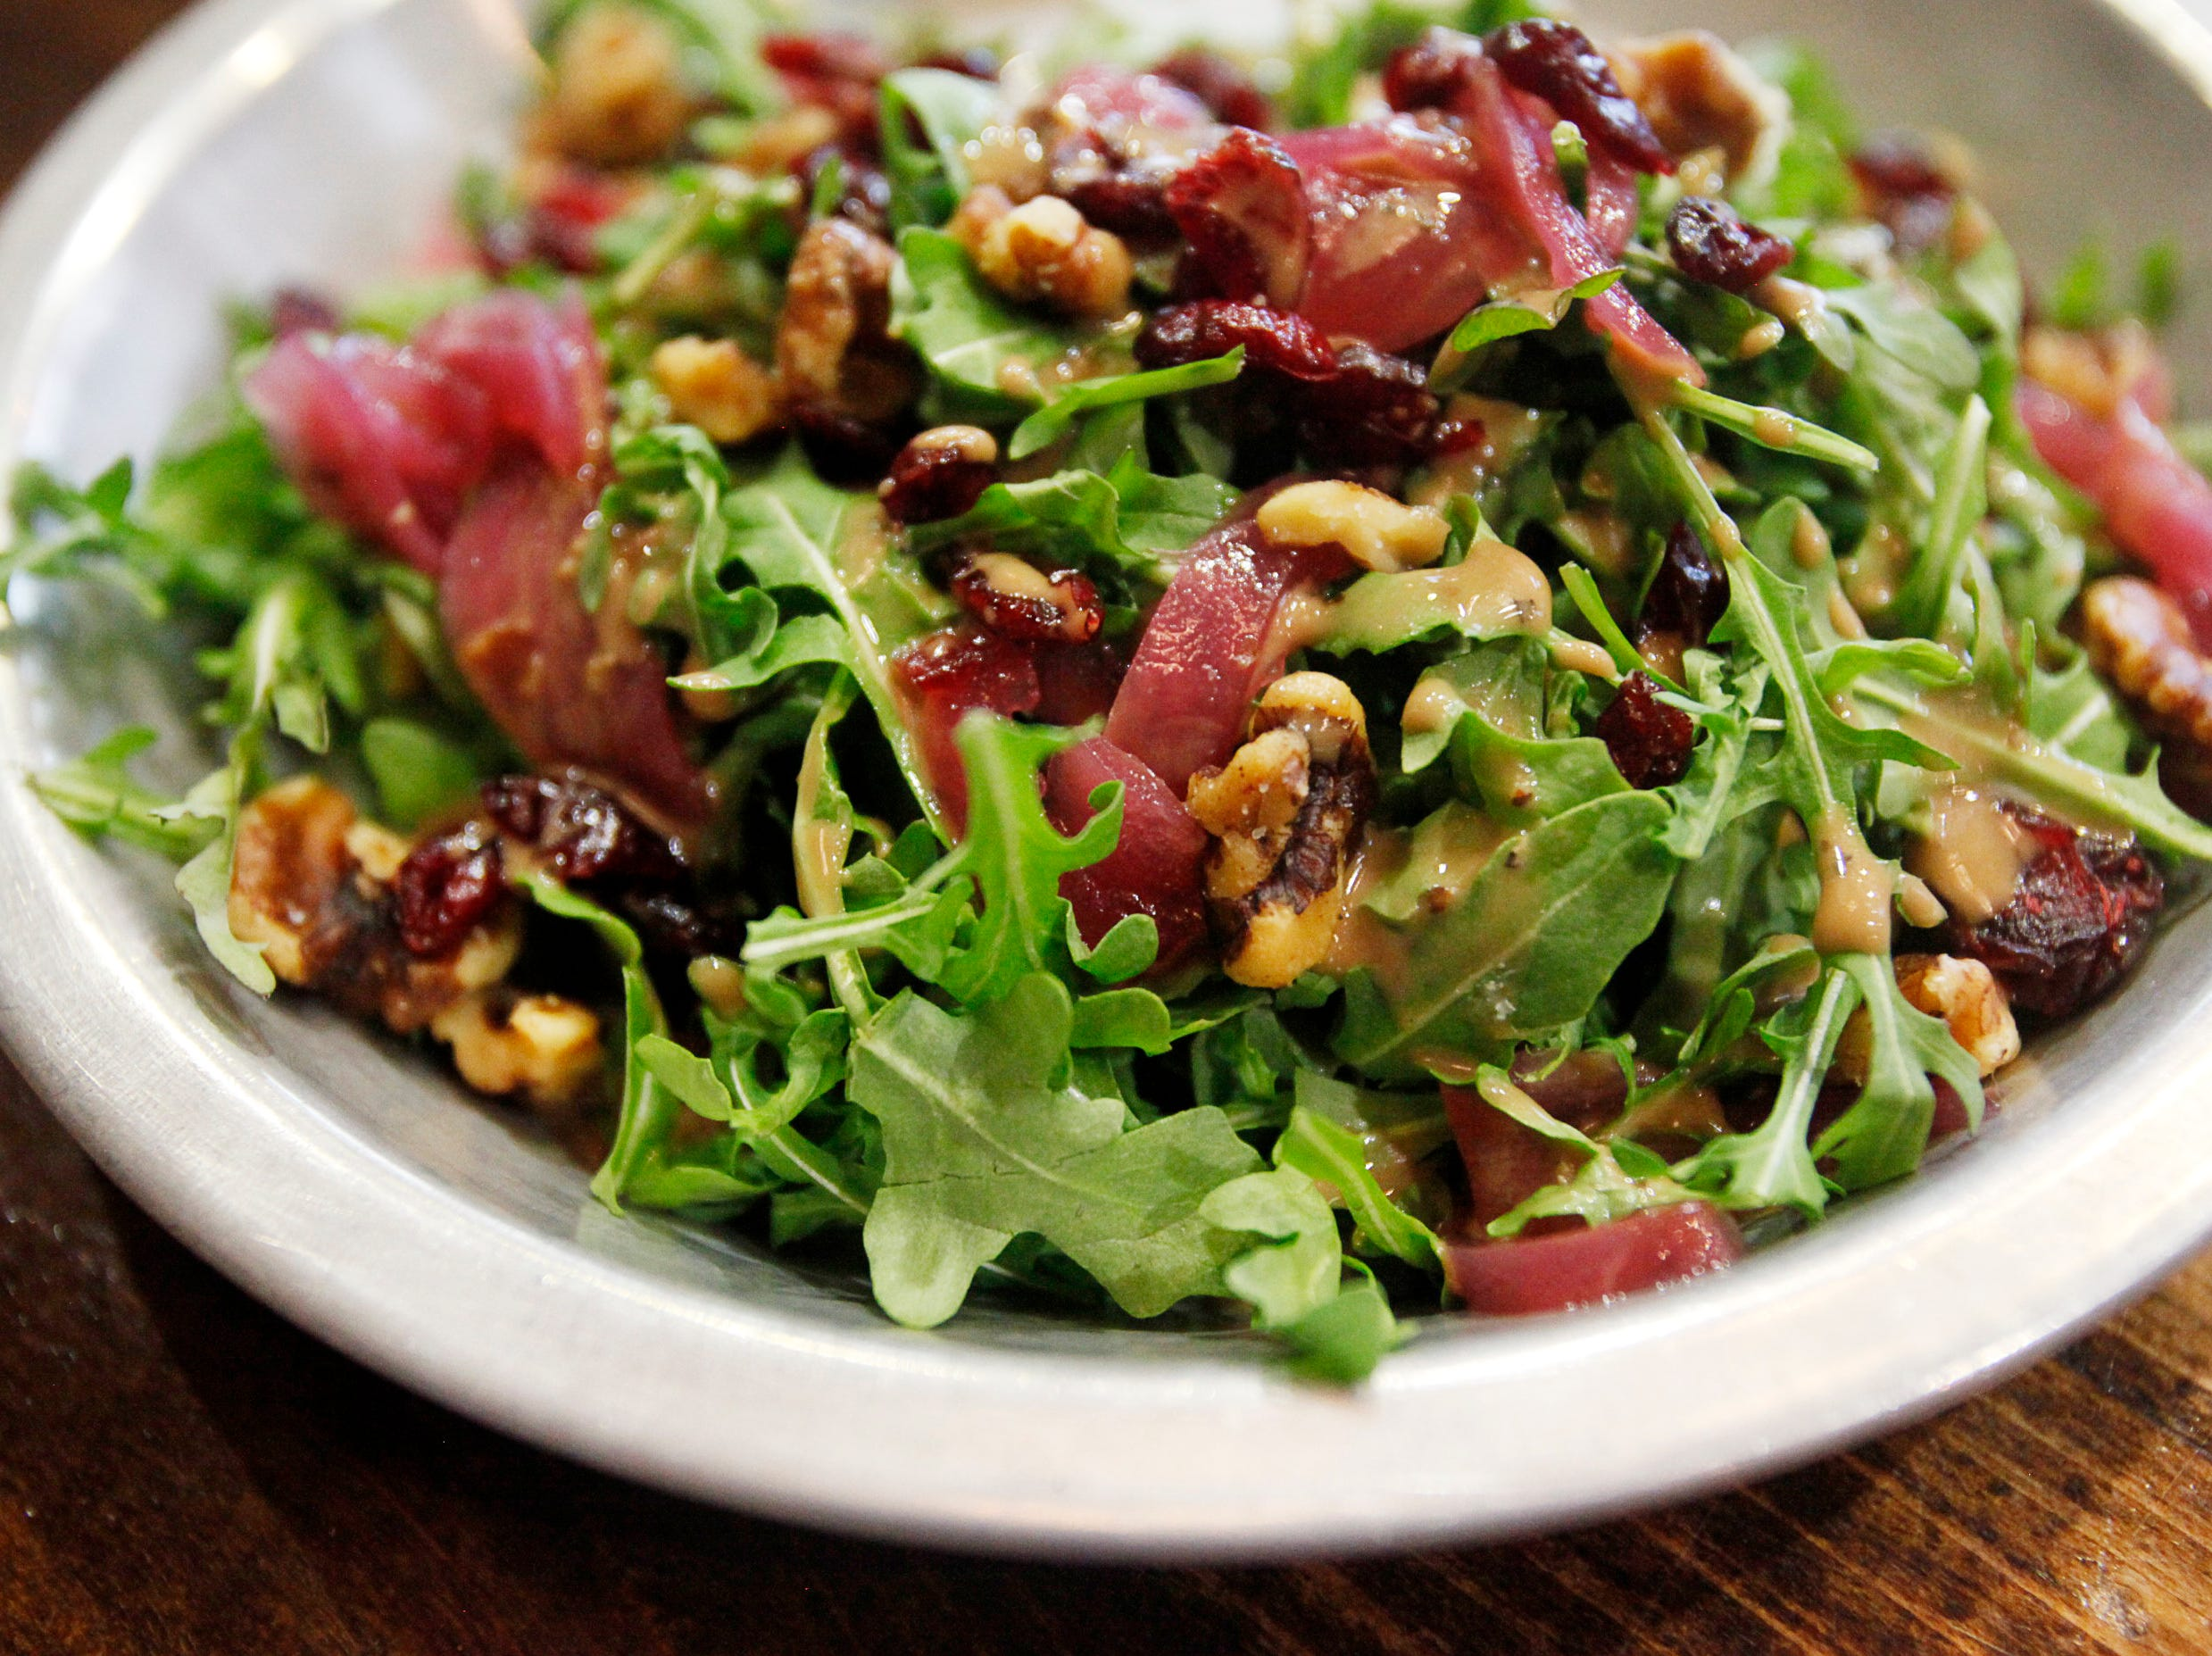 The Monk's Flask house salad comes with arugula, pickled red onion, dried cranberries and toasted walnuts with a basic balsamic vinaigrette.